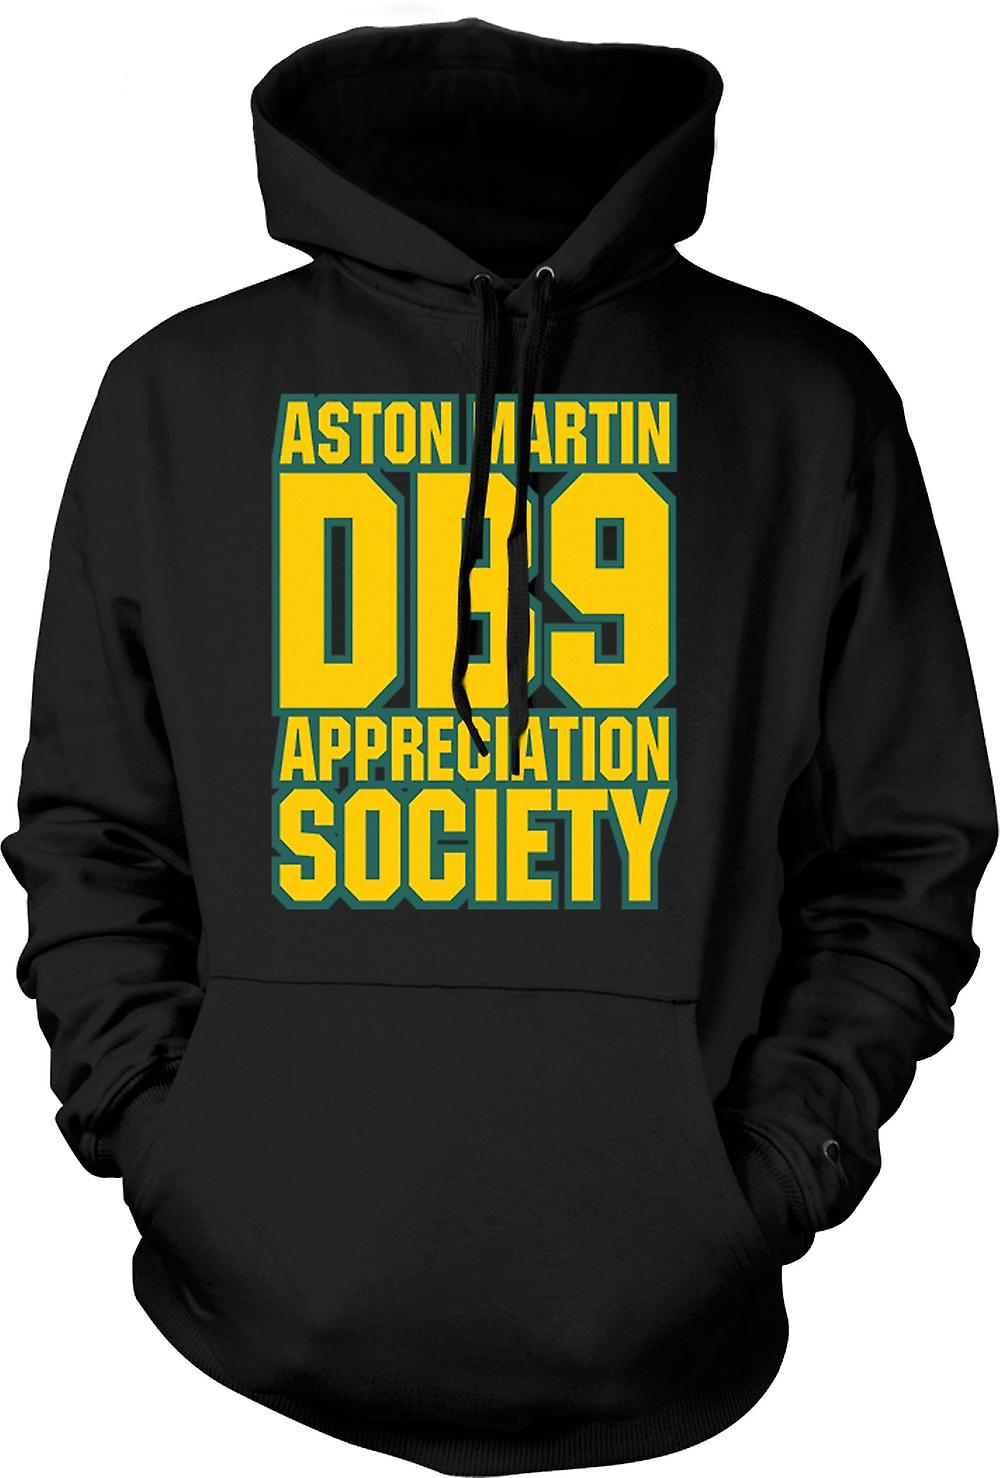 Mens Hoodie - Aston Martin DB9 Appreciation Society